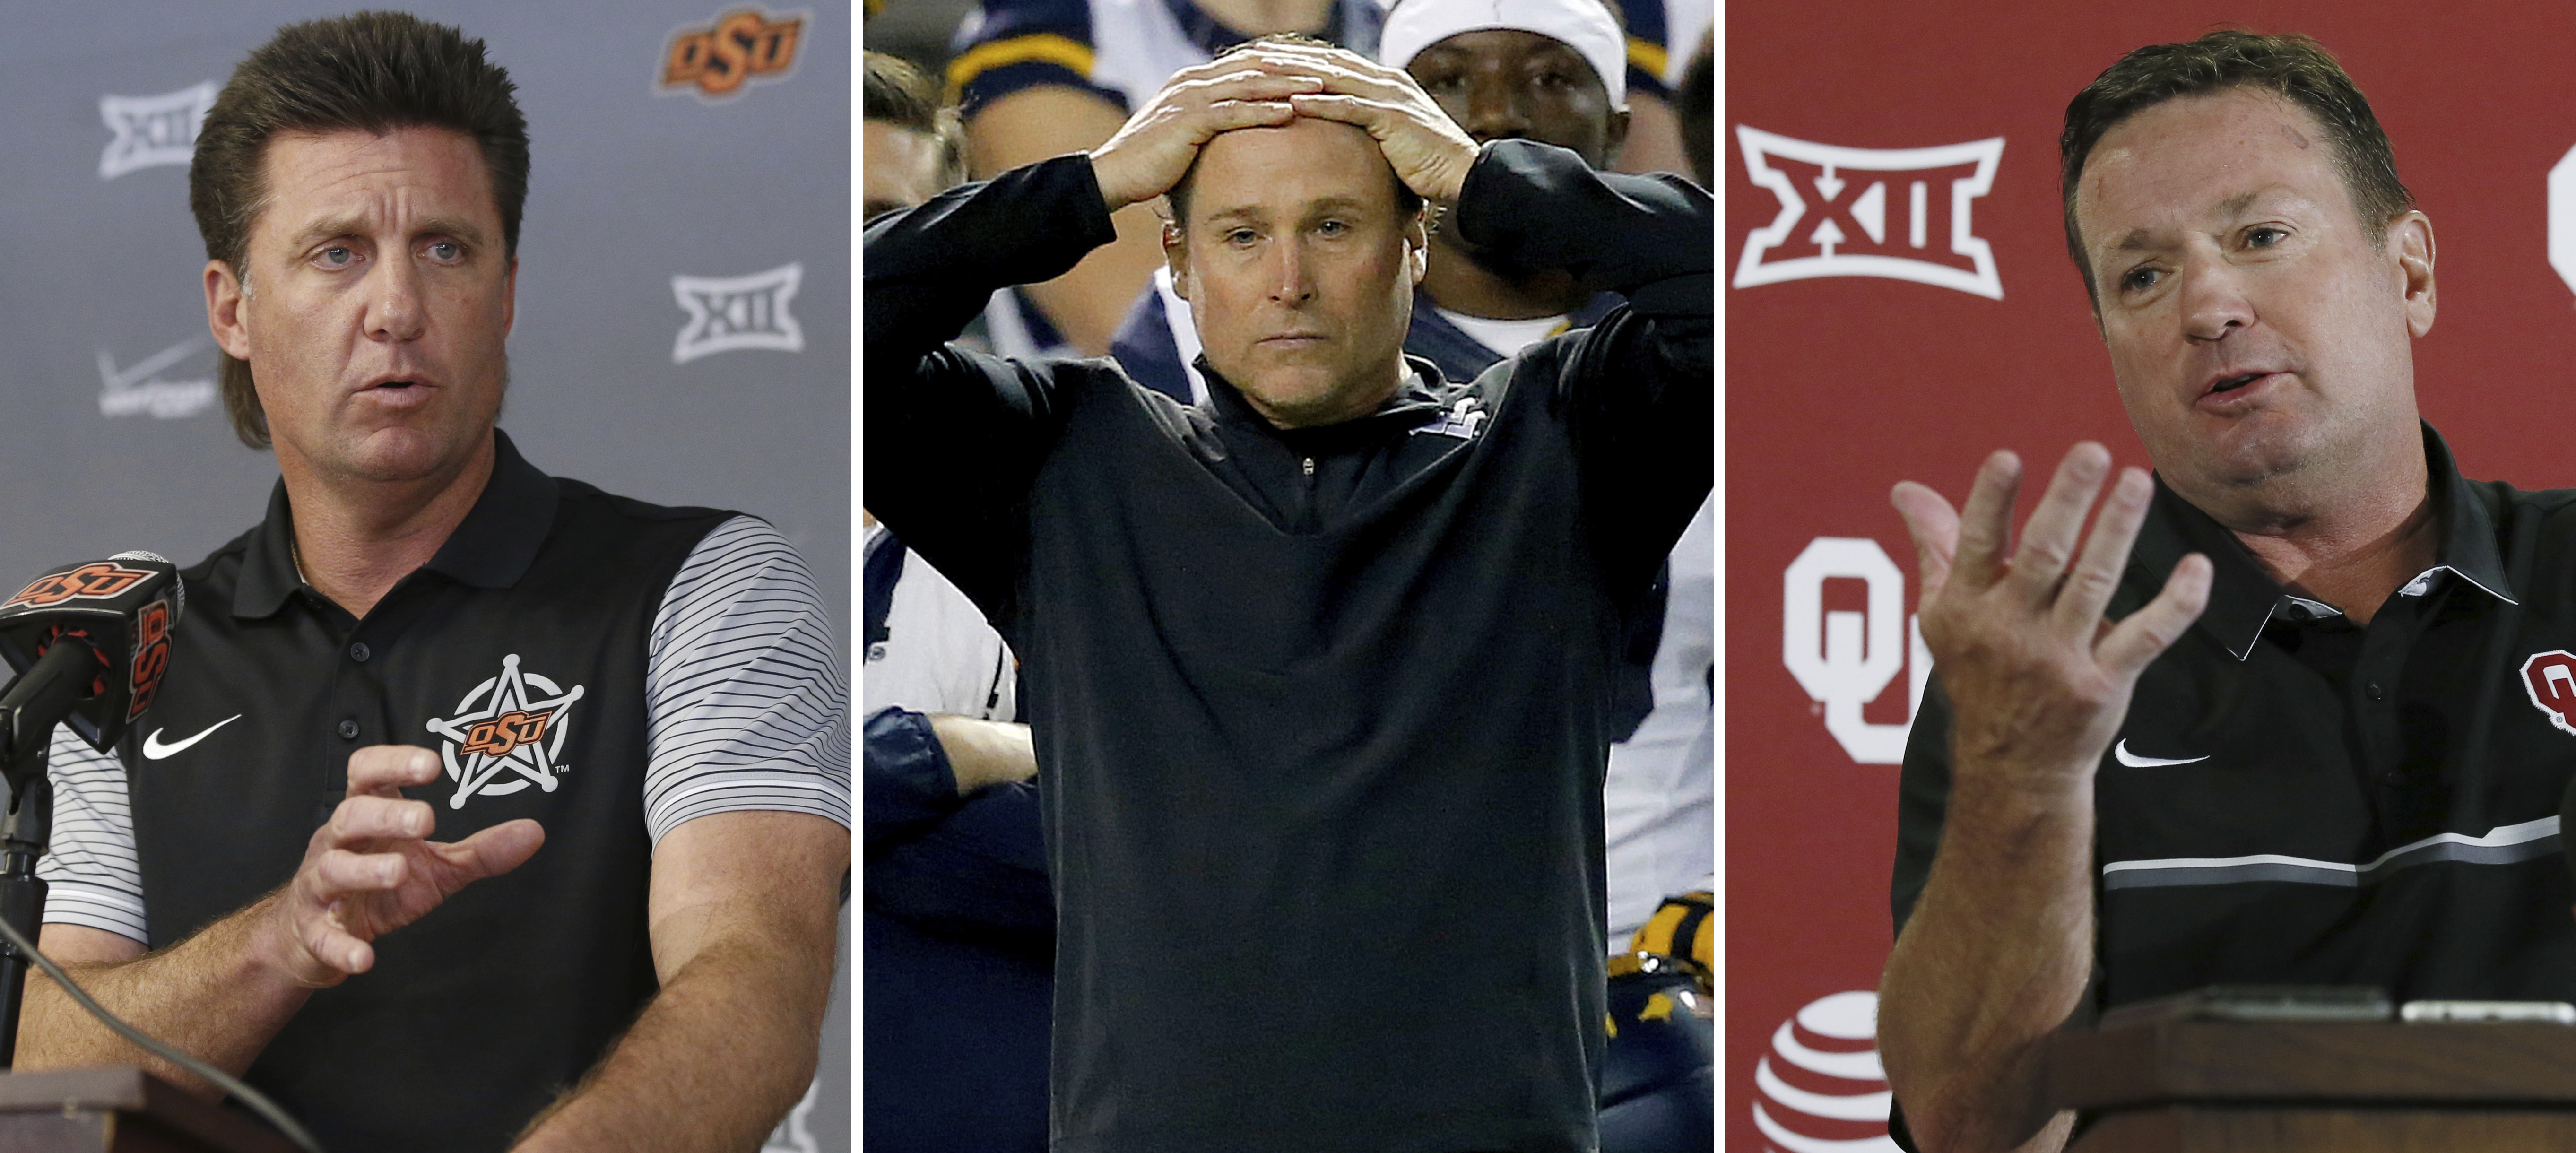 FILE - At left, in an Oct. 17, 2016, file photo, Oklahoma State head coach Mike Gundy speaks during an NCAA college football news conference in Stillwater, Okla. At center, in a Jan. 2, 2016, file photo, West Virginia coach Dana Holgorsen watches during t